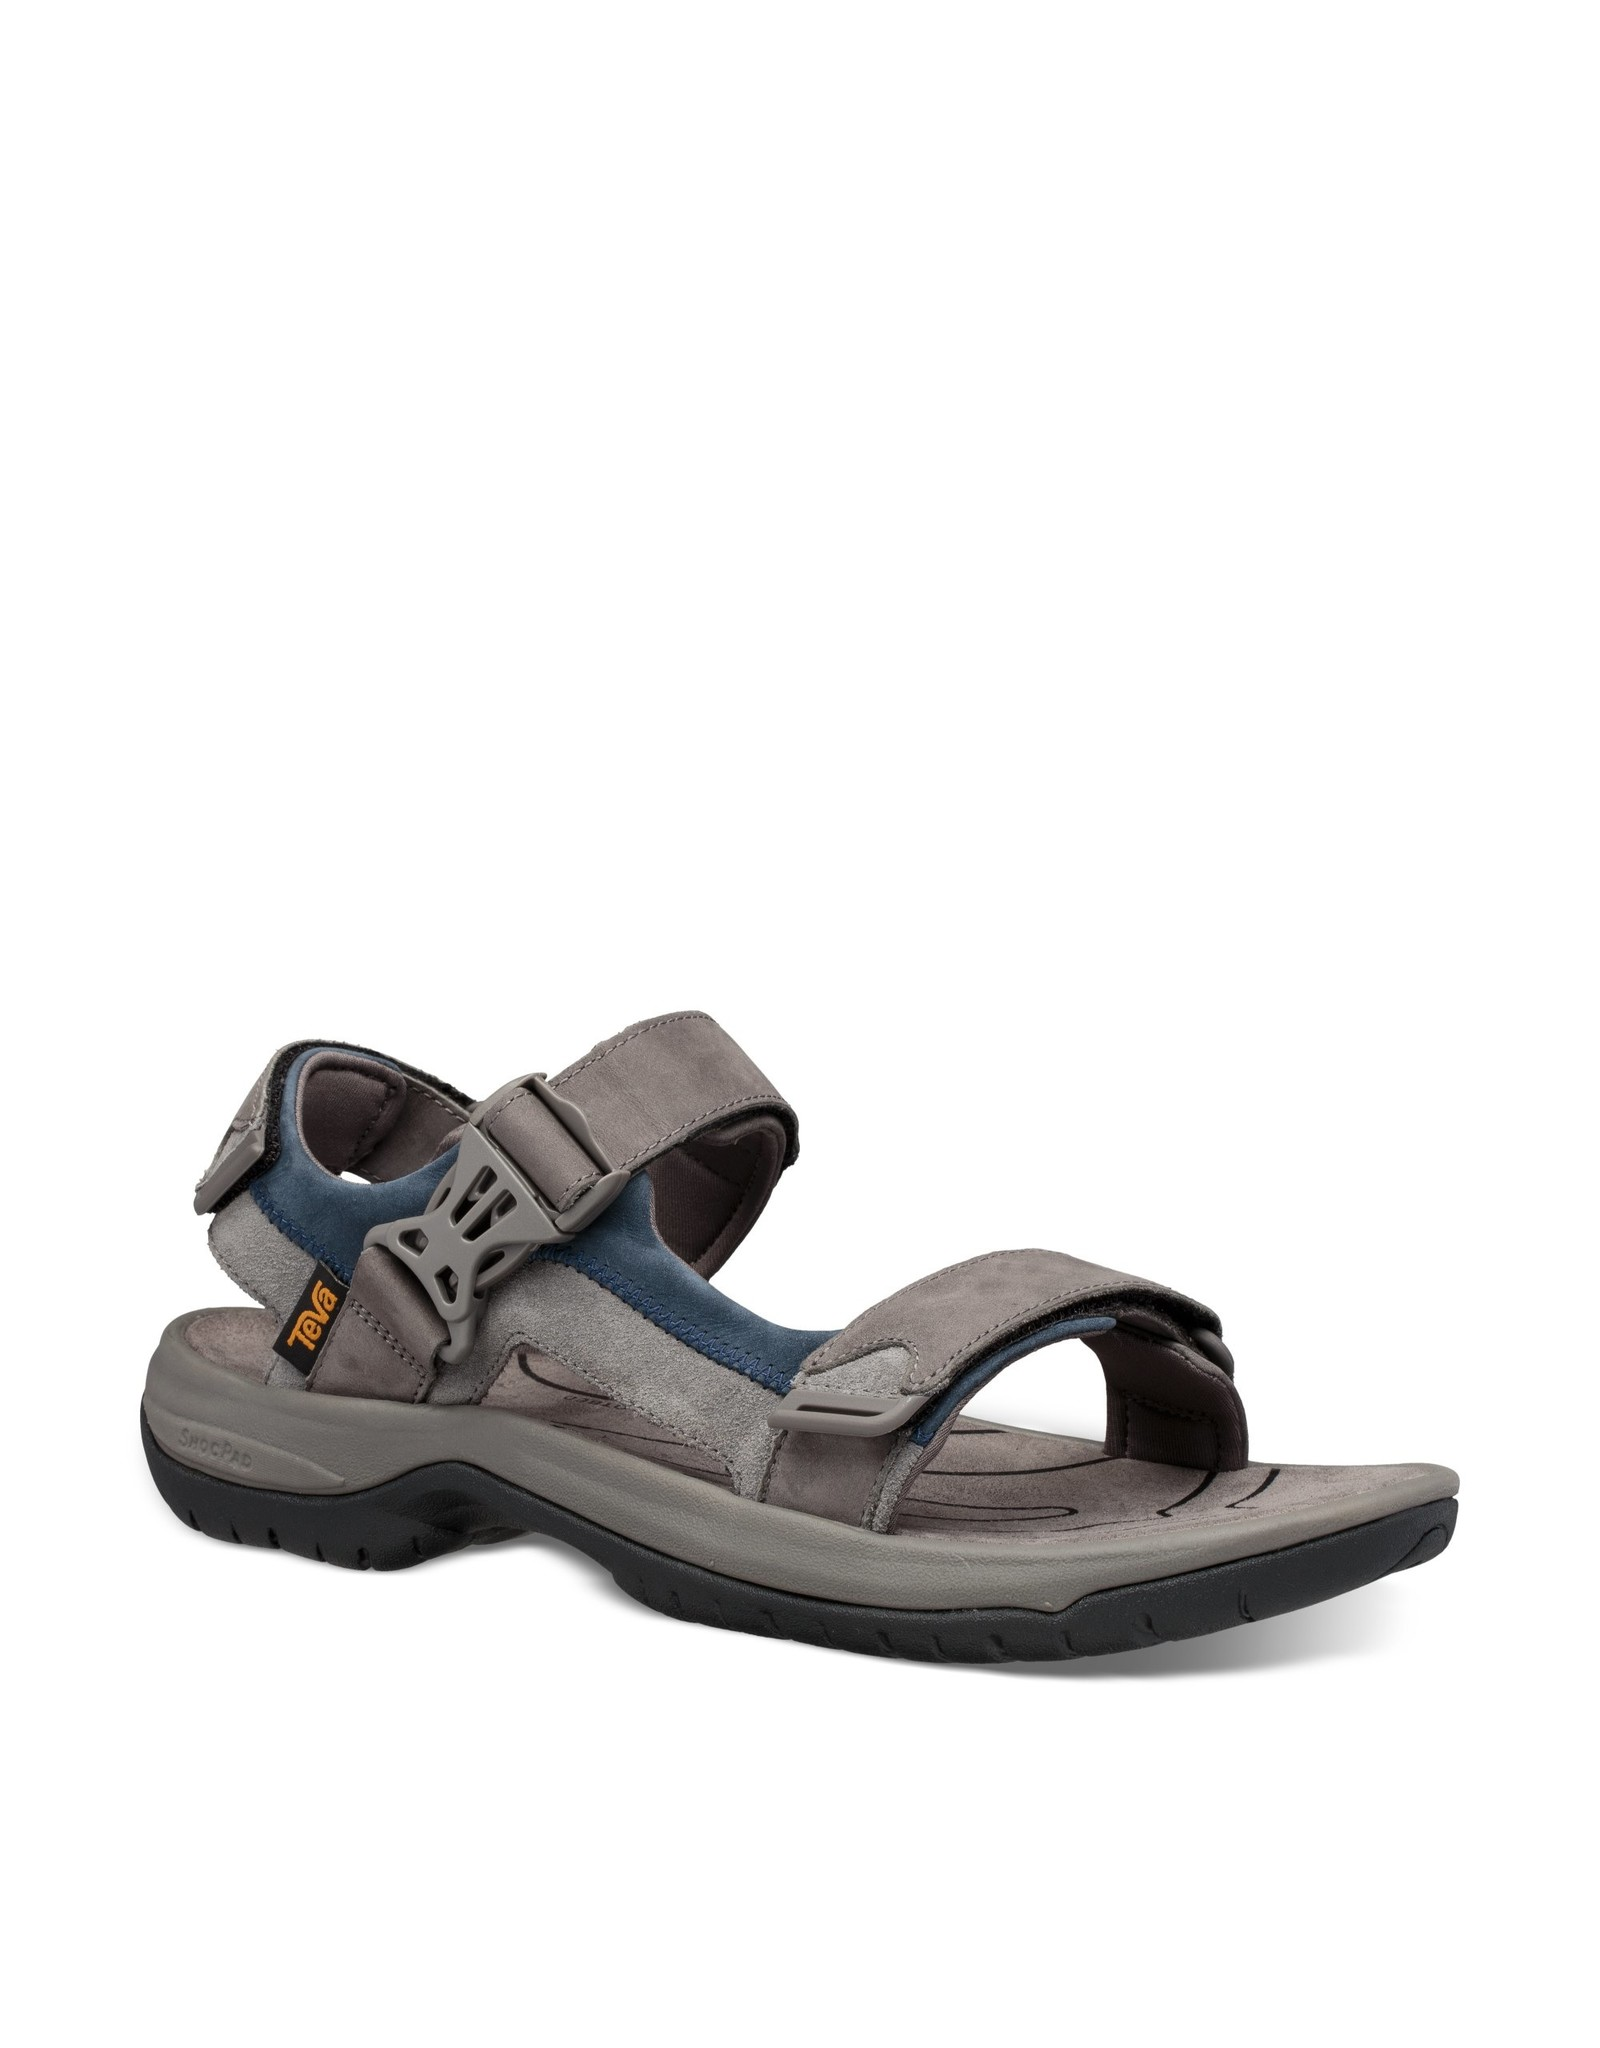 Teva Men's Tanaway leather